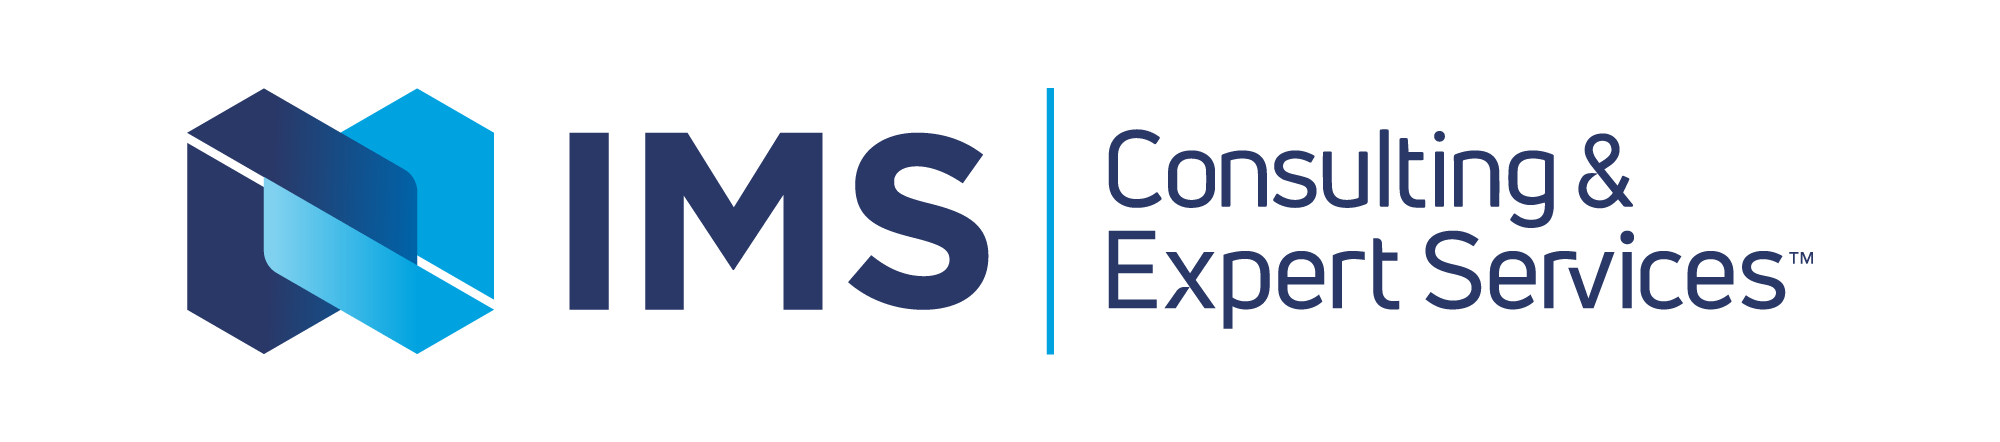 IMS Announces Major Job Fair at Pensacola Campus for Military Spouses, Transitioning Veterans, and Members of the Public 6